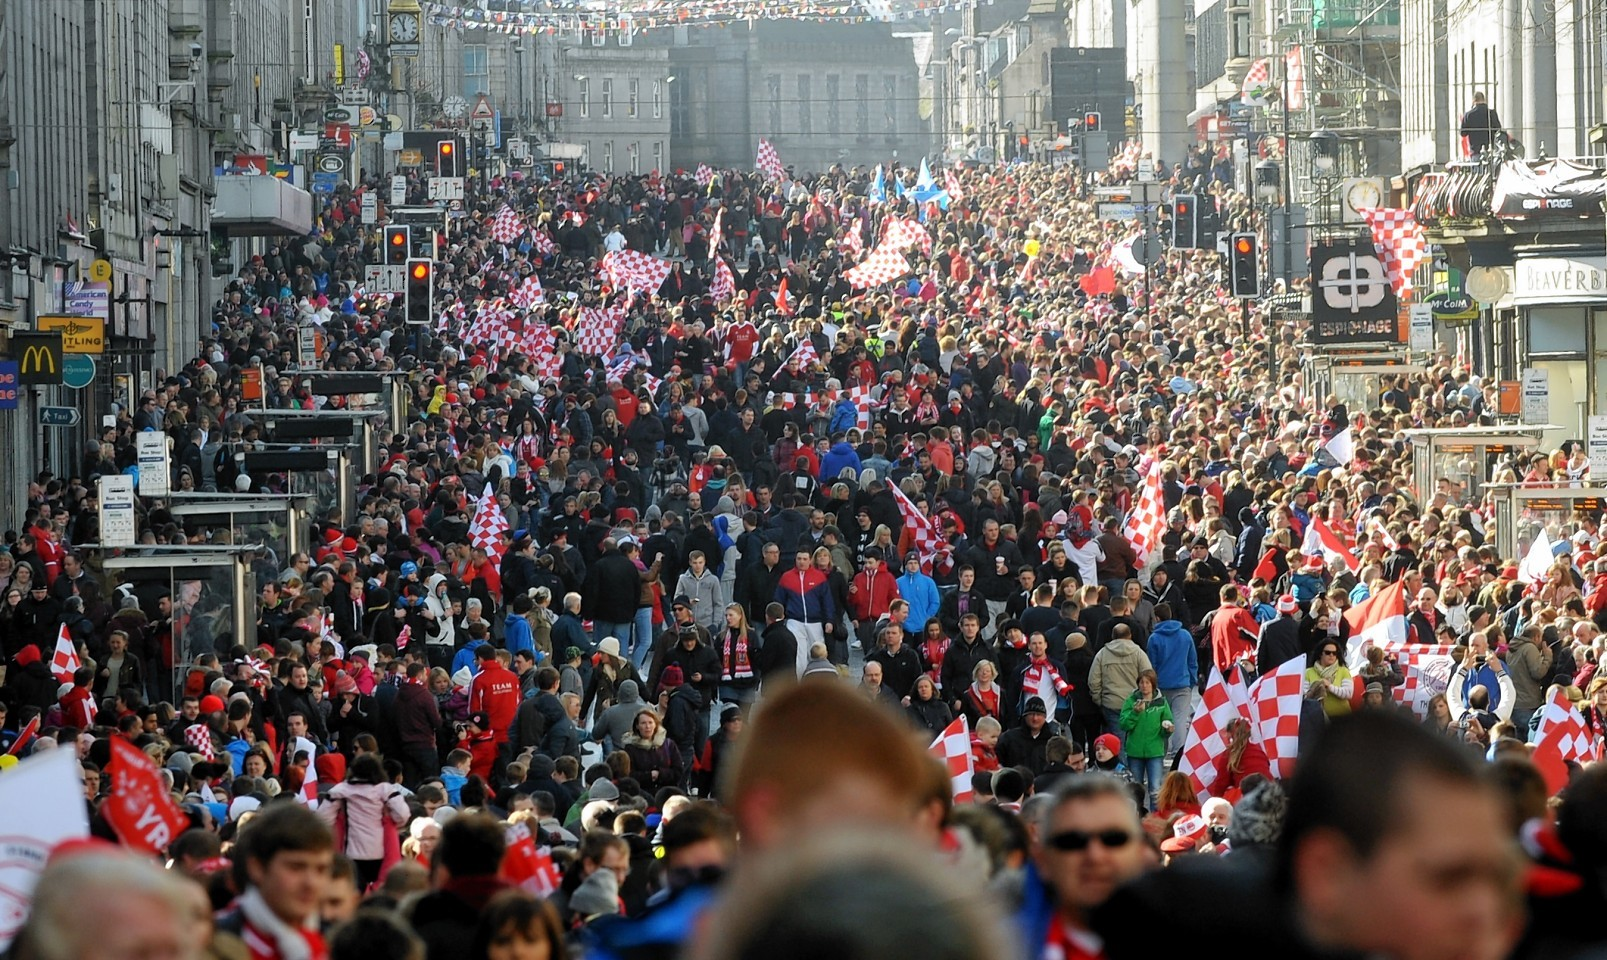 Tens of thousands of fans turned out to celebrate the 2014 cup success